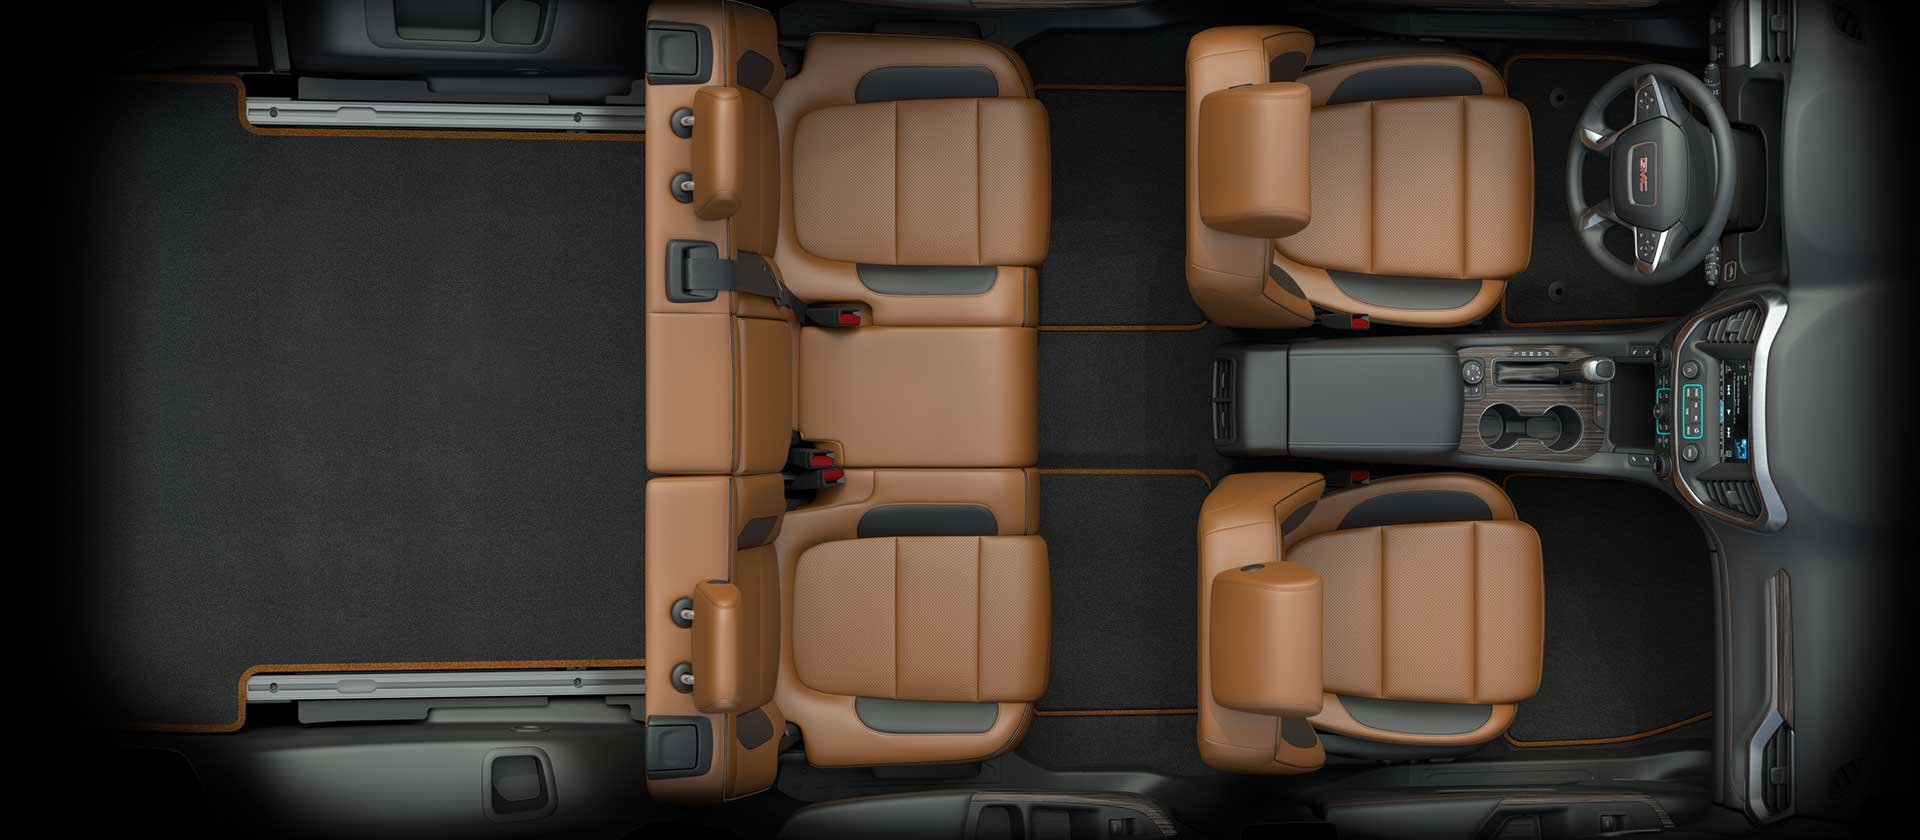 It May Be The Smallest In Its Class When Compared To Its Crossover Rivals,  But The 2017 GMC Acadia Has Three Rows Of Seats And Is A Great Family Sized  ...